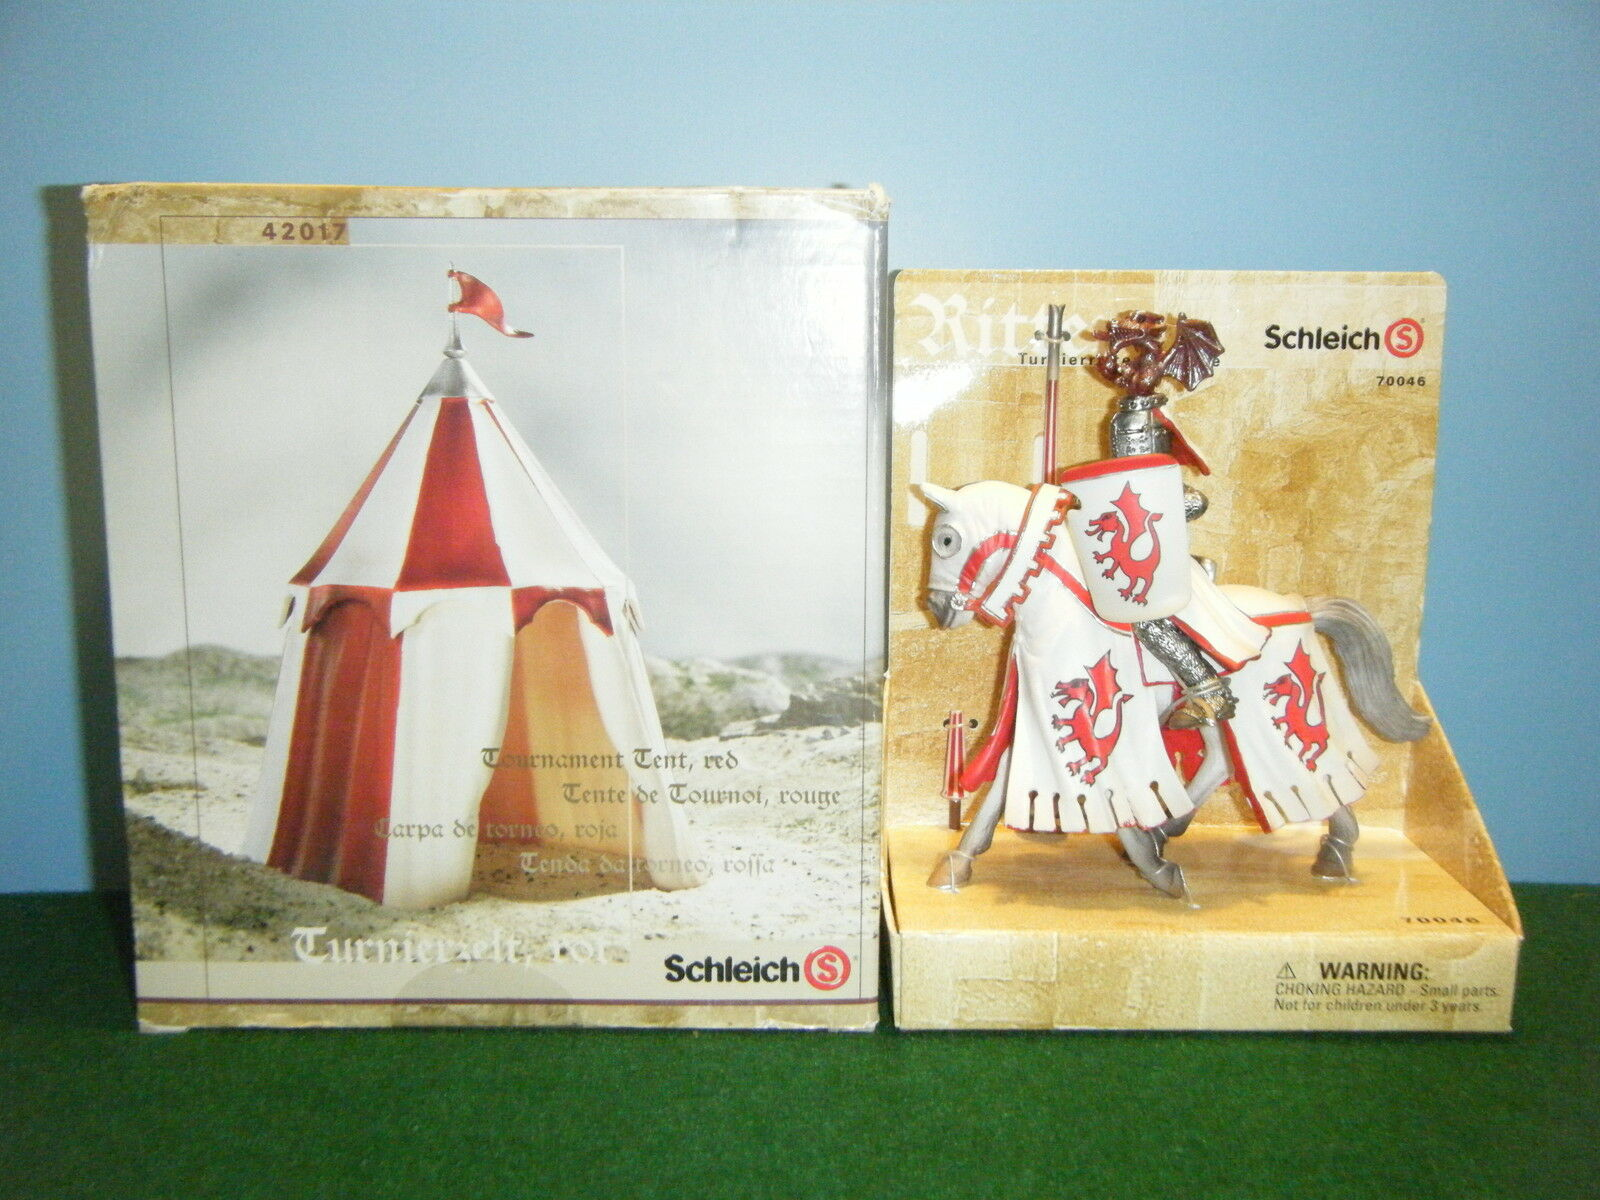 SCHLEICH WORLD OF KNIGHTS TOURNAMENT DRAGON KNIGHT  70046 & ROT TENT  42017